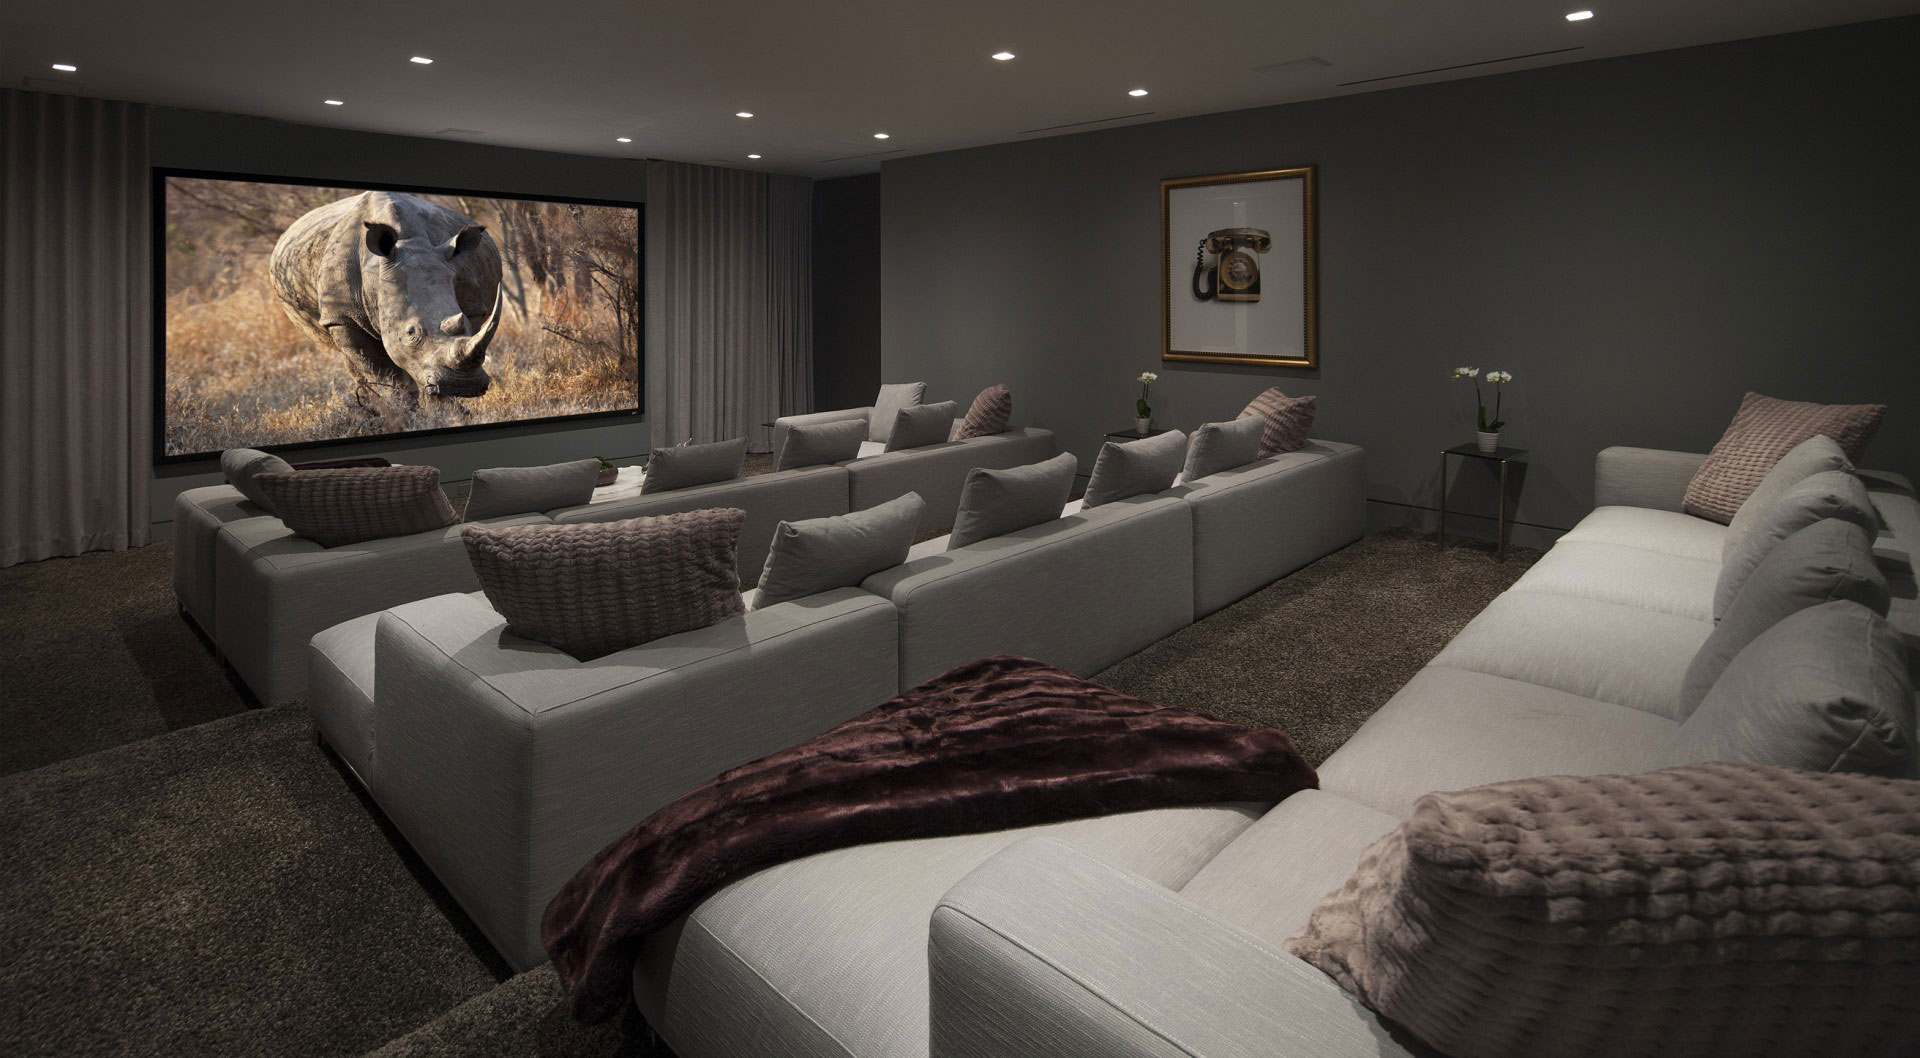 Home Theater System Delhi NCR | Home Theater Designing | Home ...